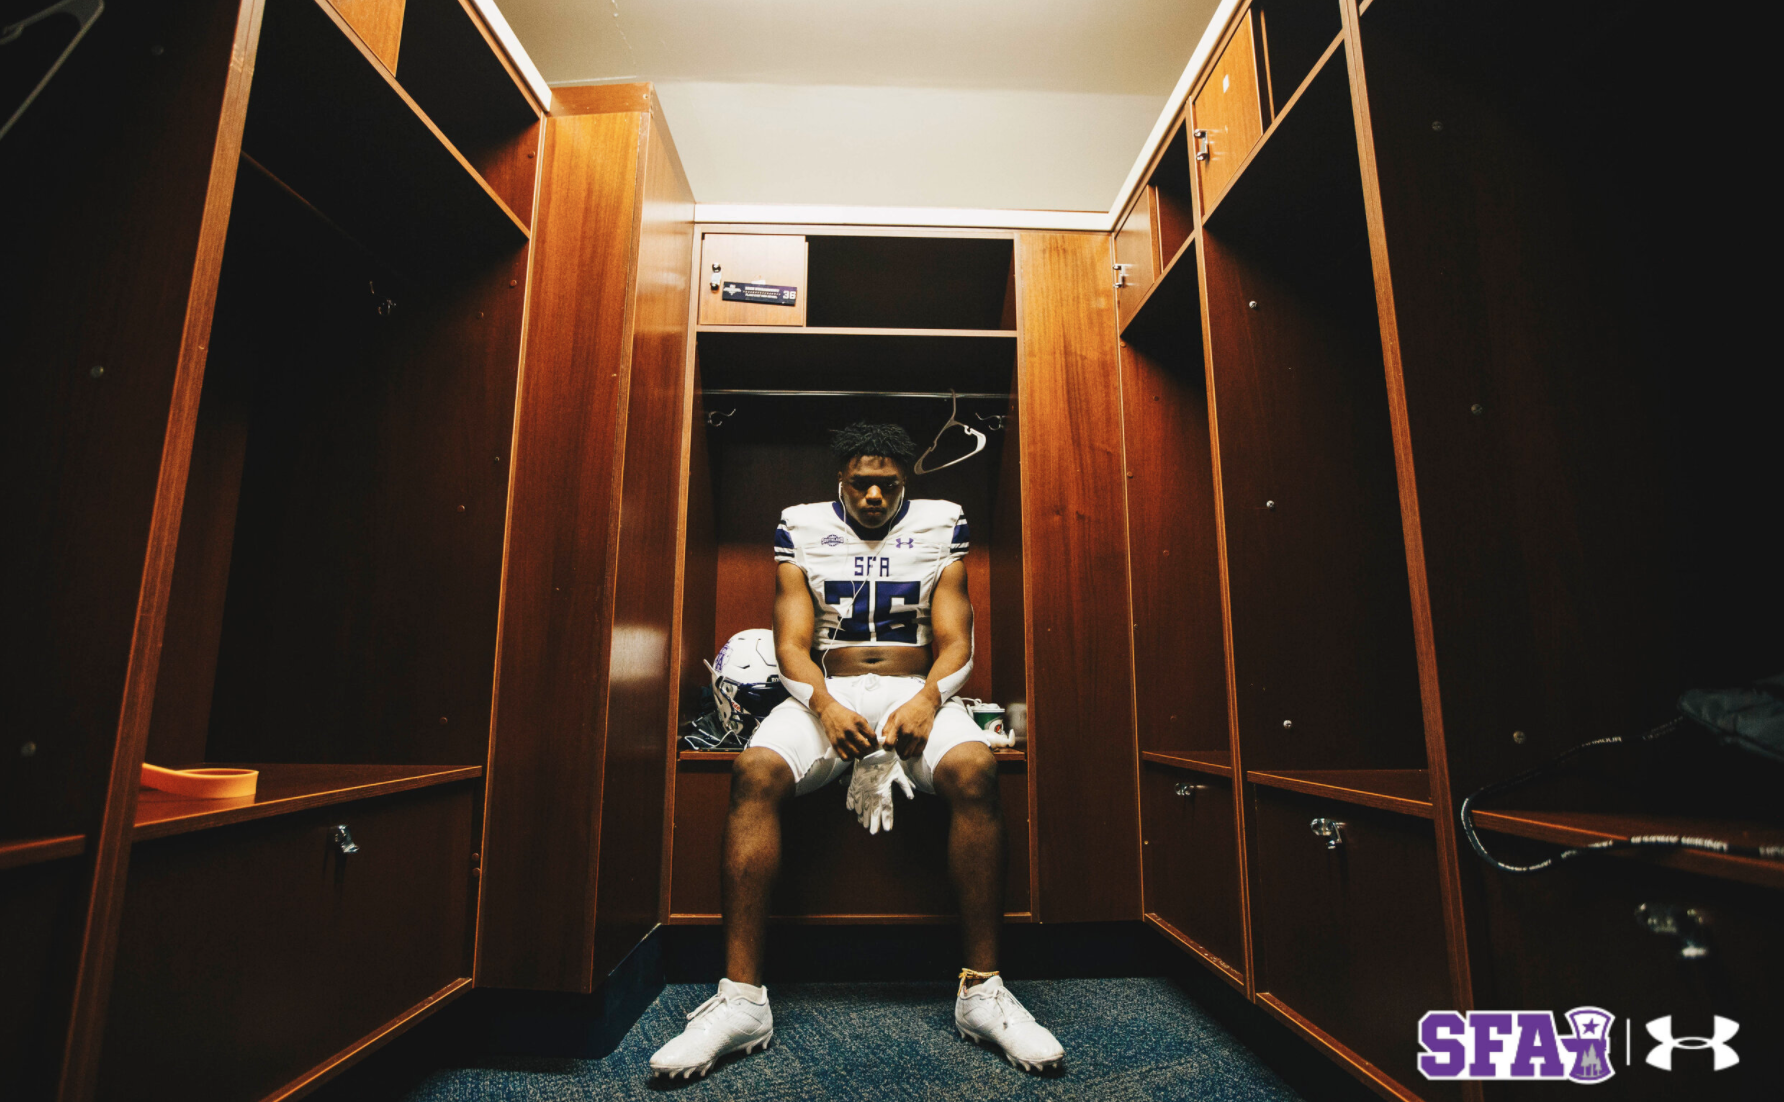 A football player sits alone in an empty locker room